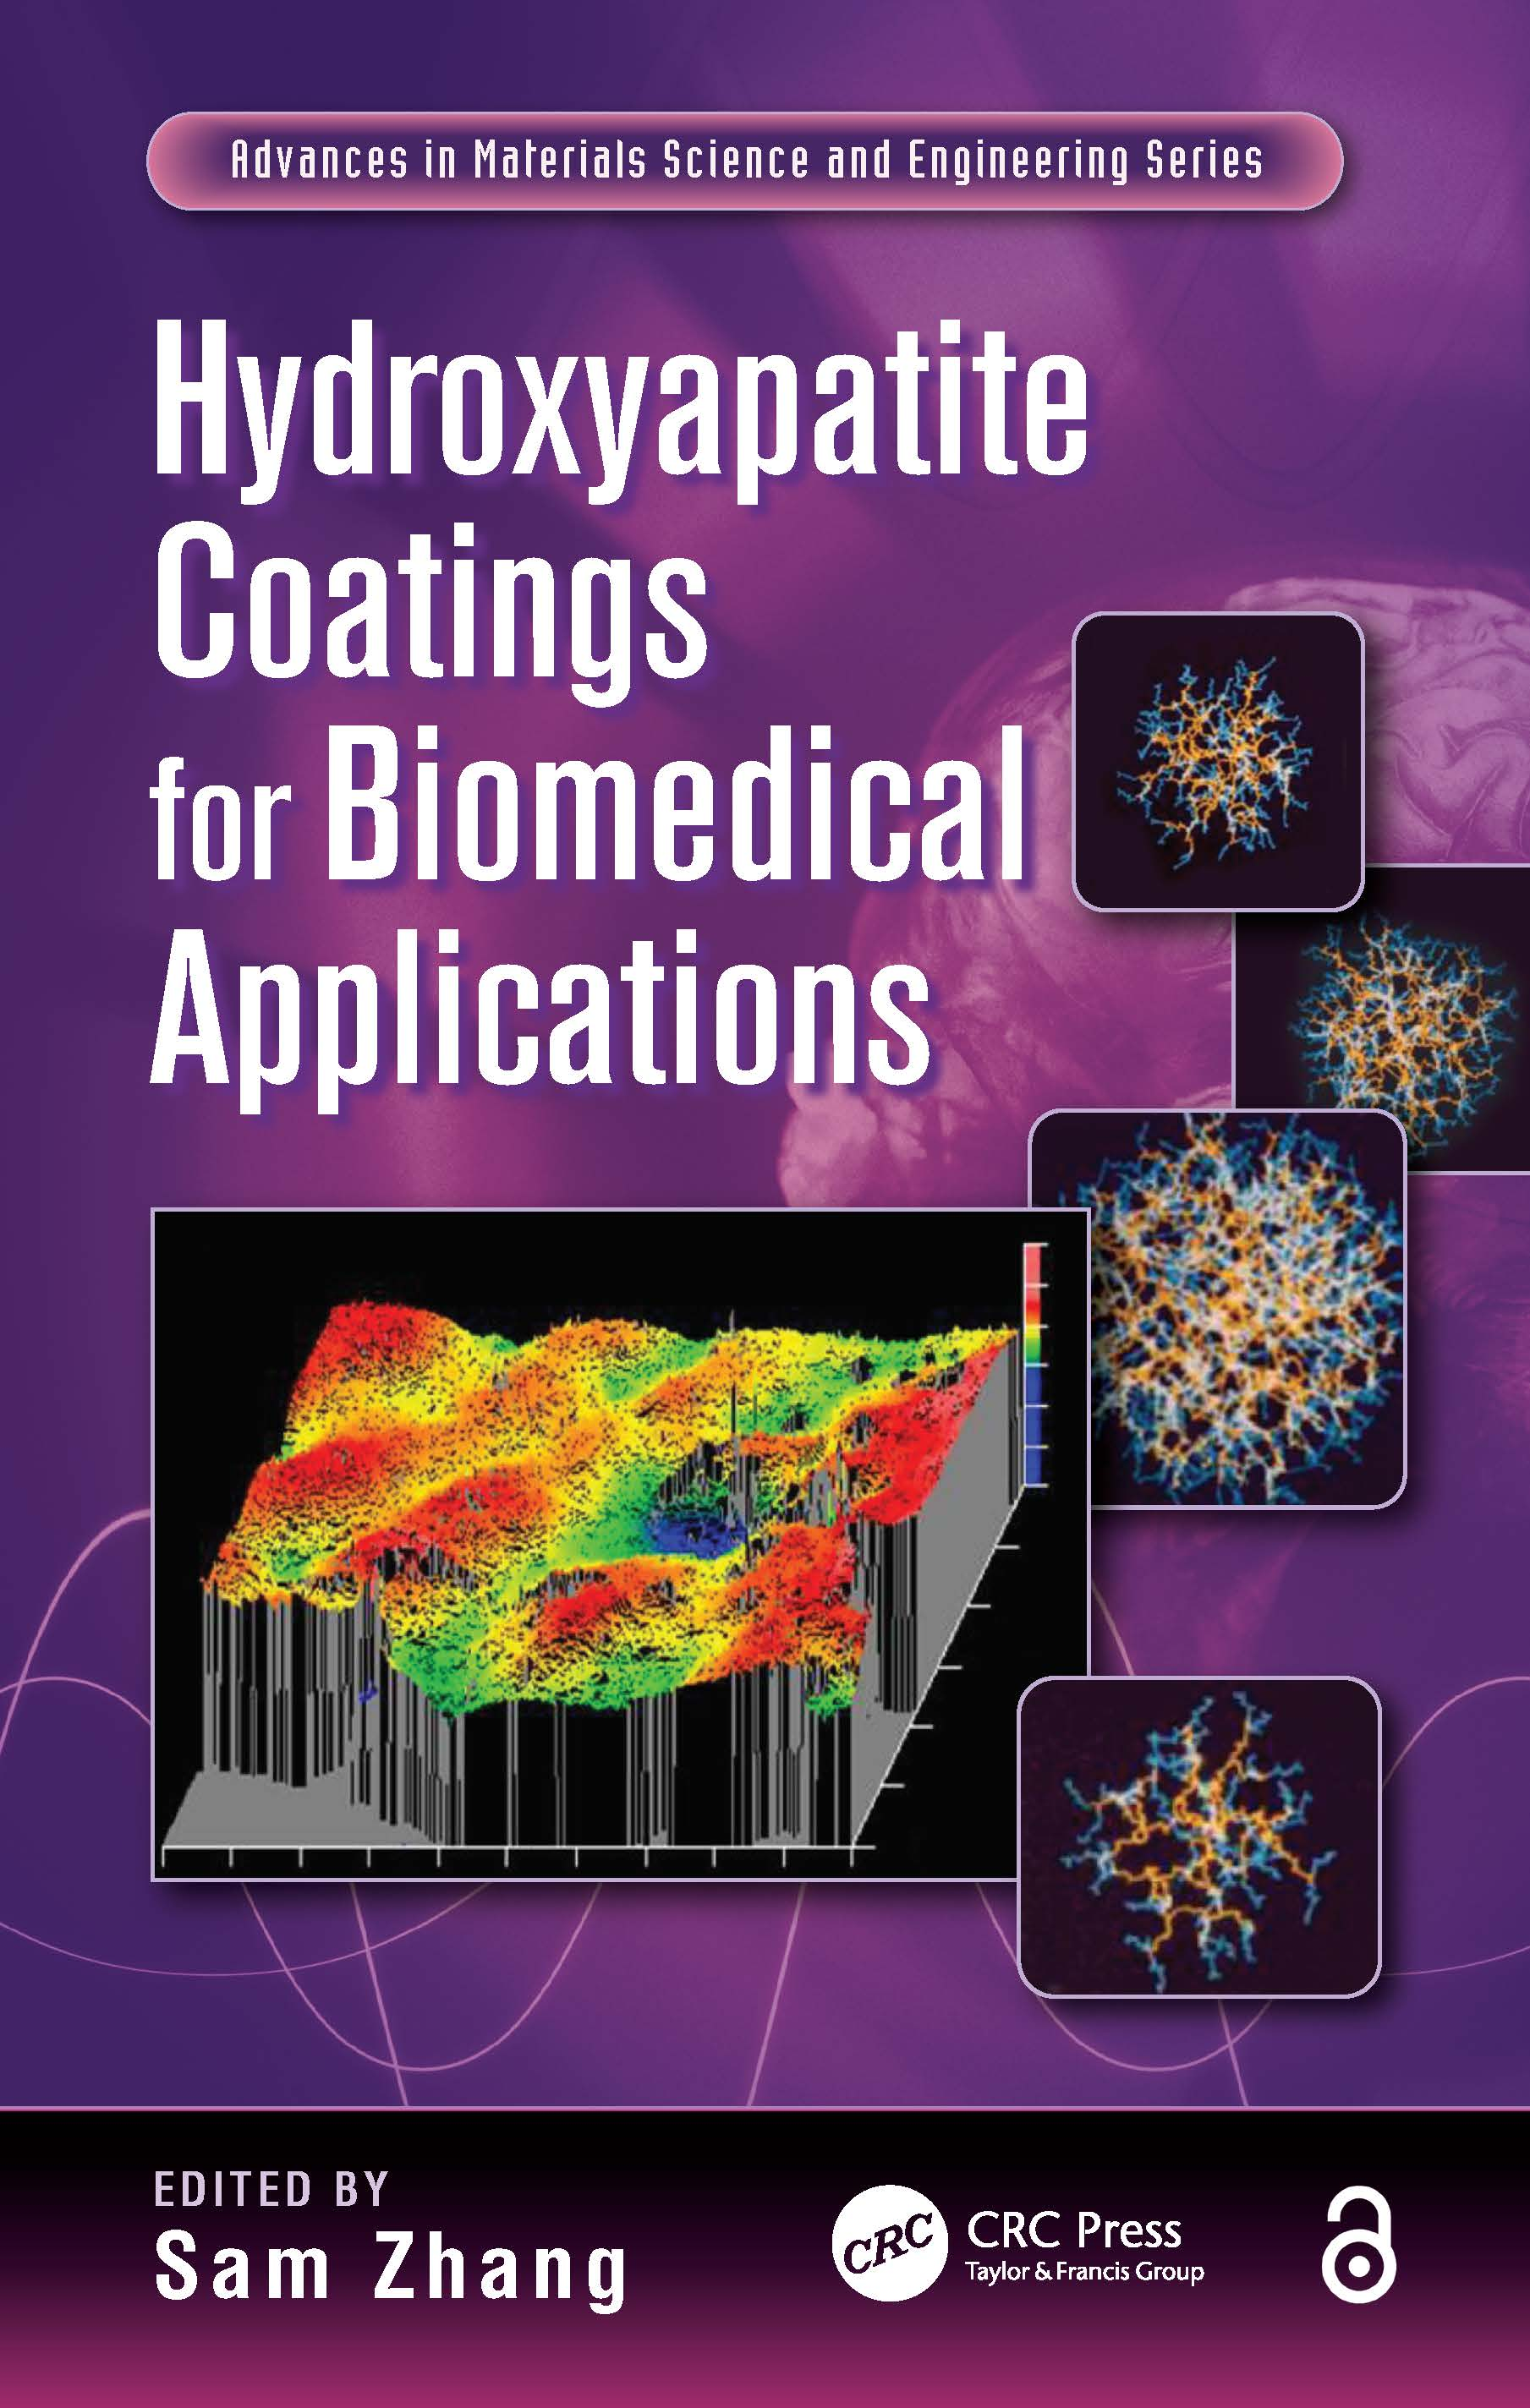 Hydroxyapatite Coatings for Biomedical Applications book cover